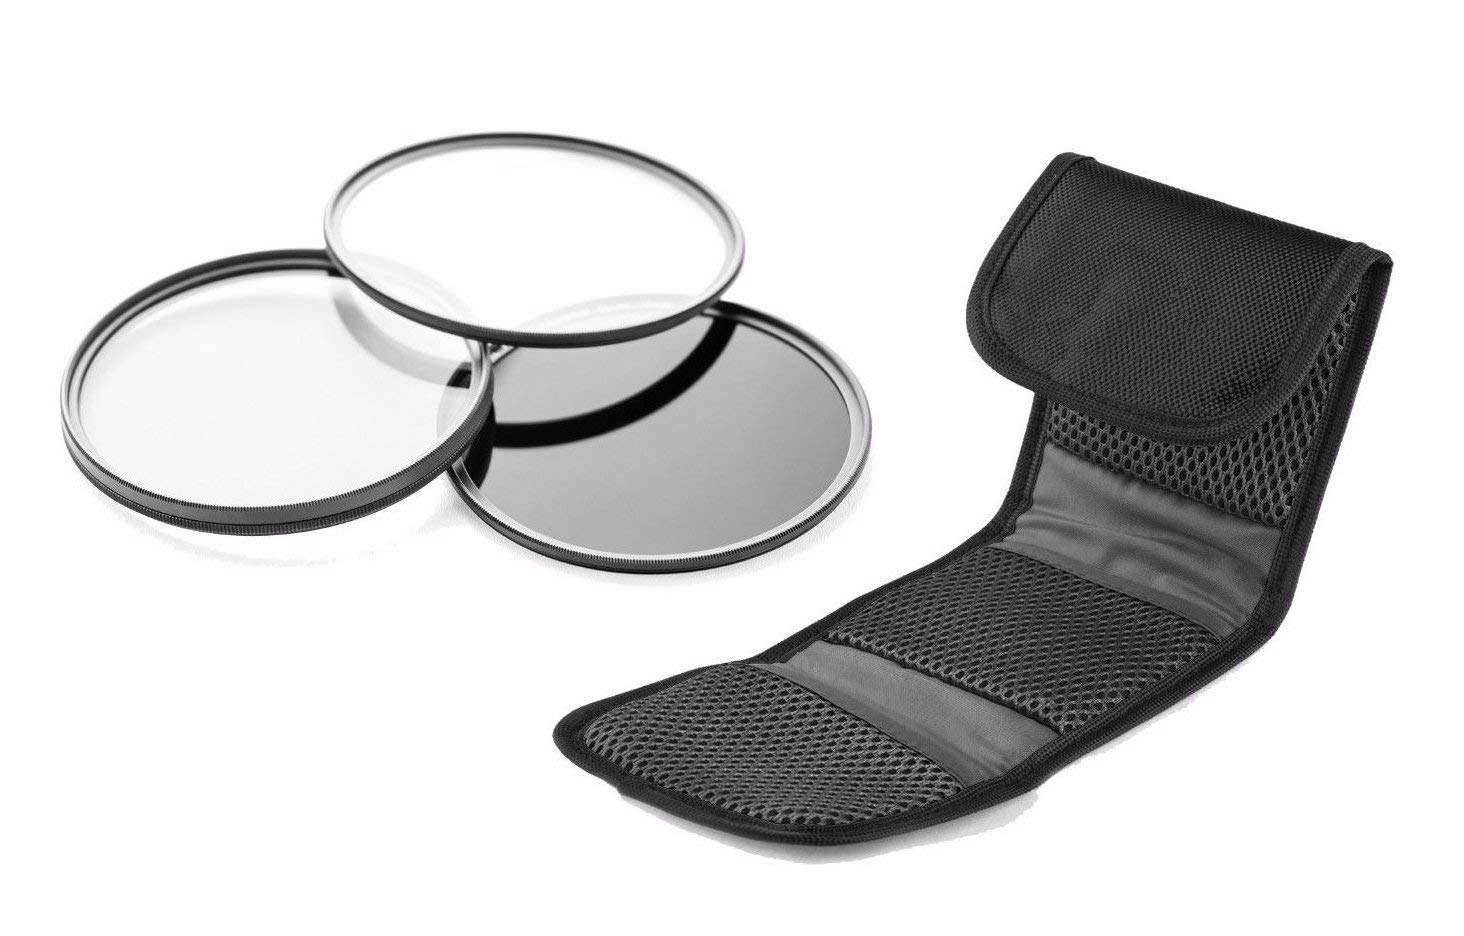 Canon PowerShot SX400 is High Grade Multi-Coated, Multi-Threaded, 3 Piece Lens Filter Kit (Includes Adapter Ring)